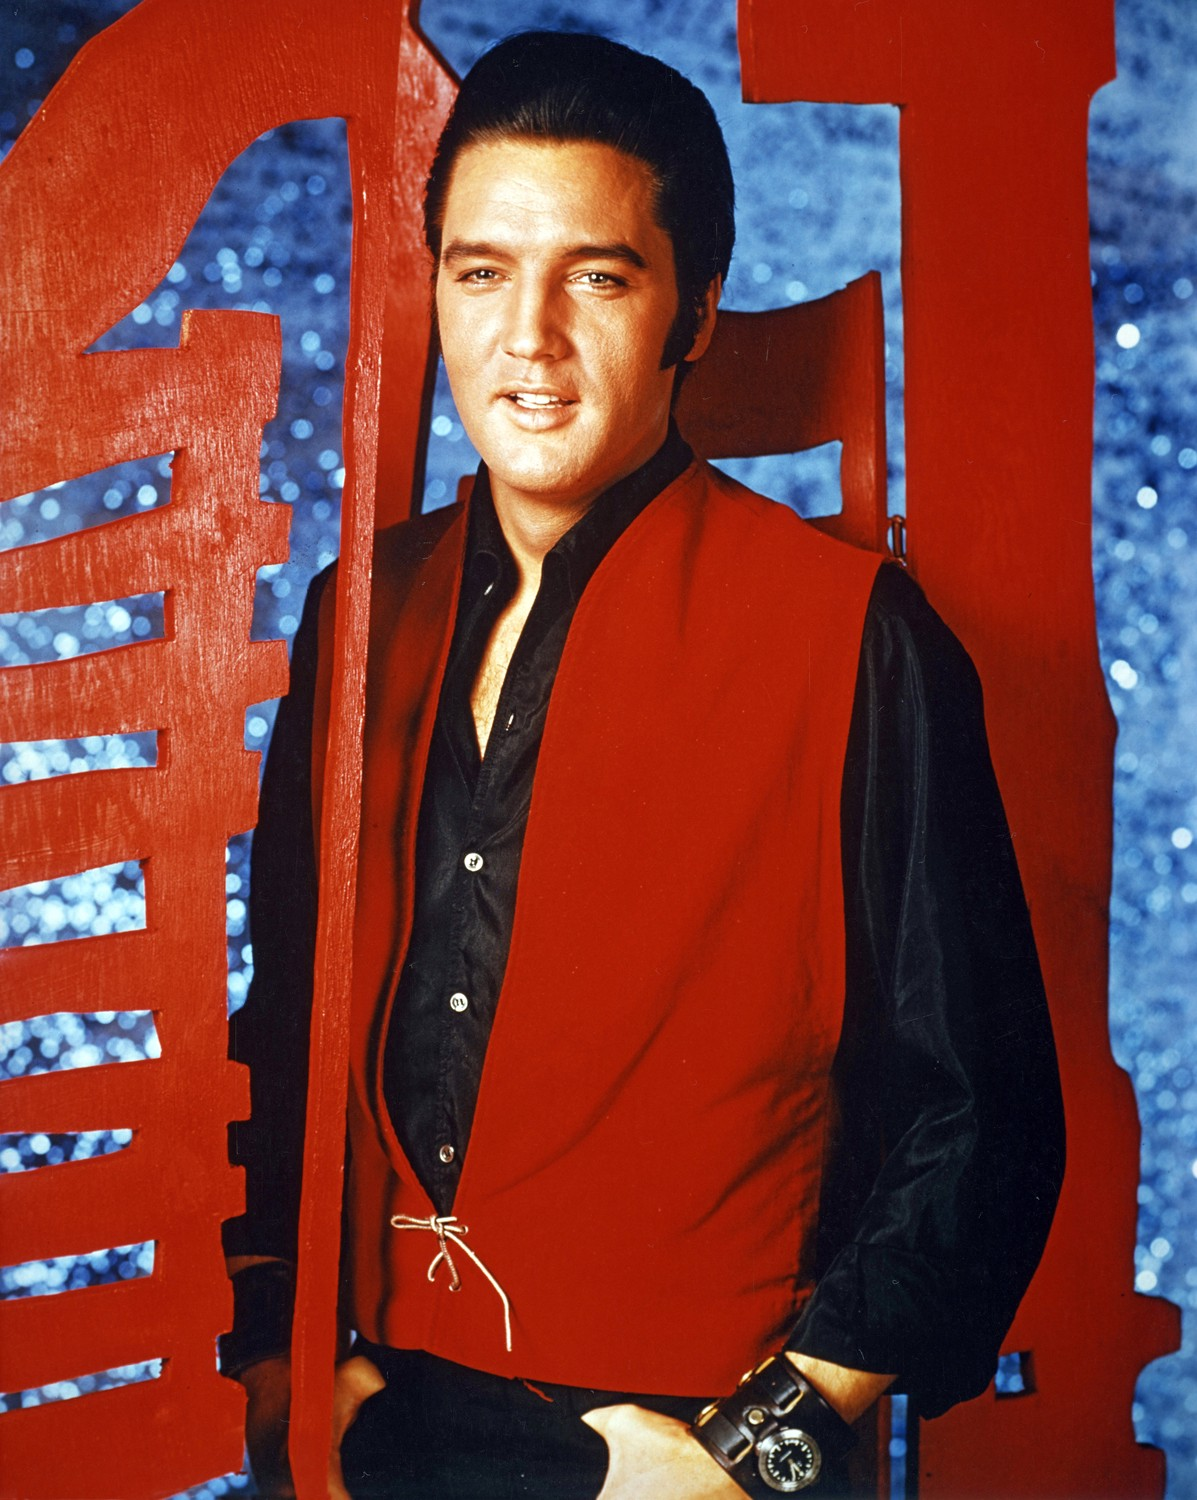 Red and black are a provocative combination in this promotional June 1968 photo shoot for the Elvis NBC special.